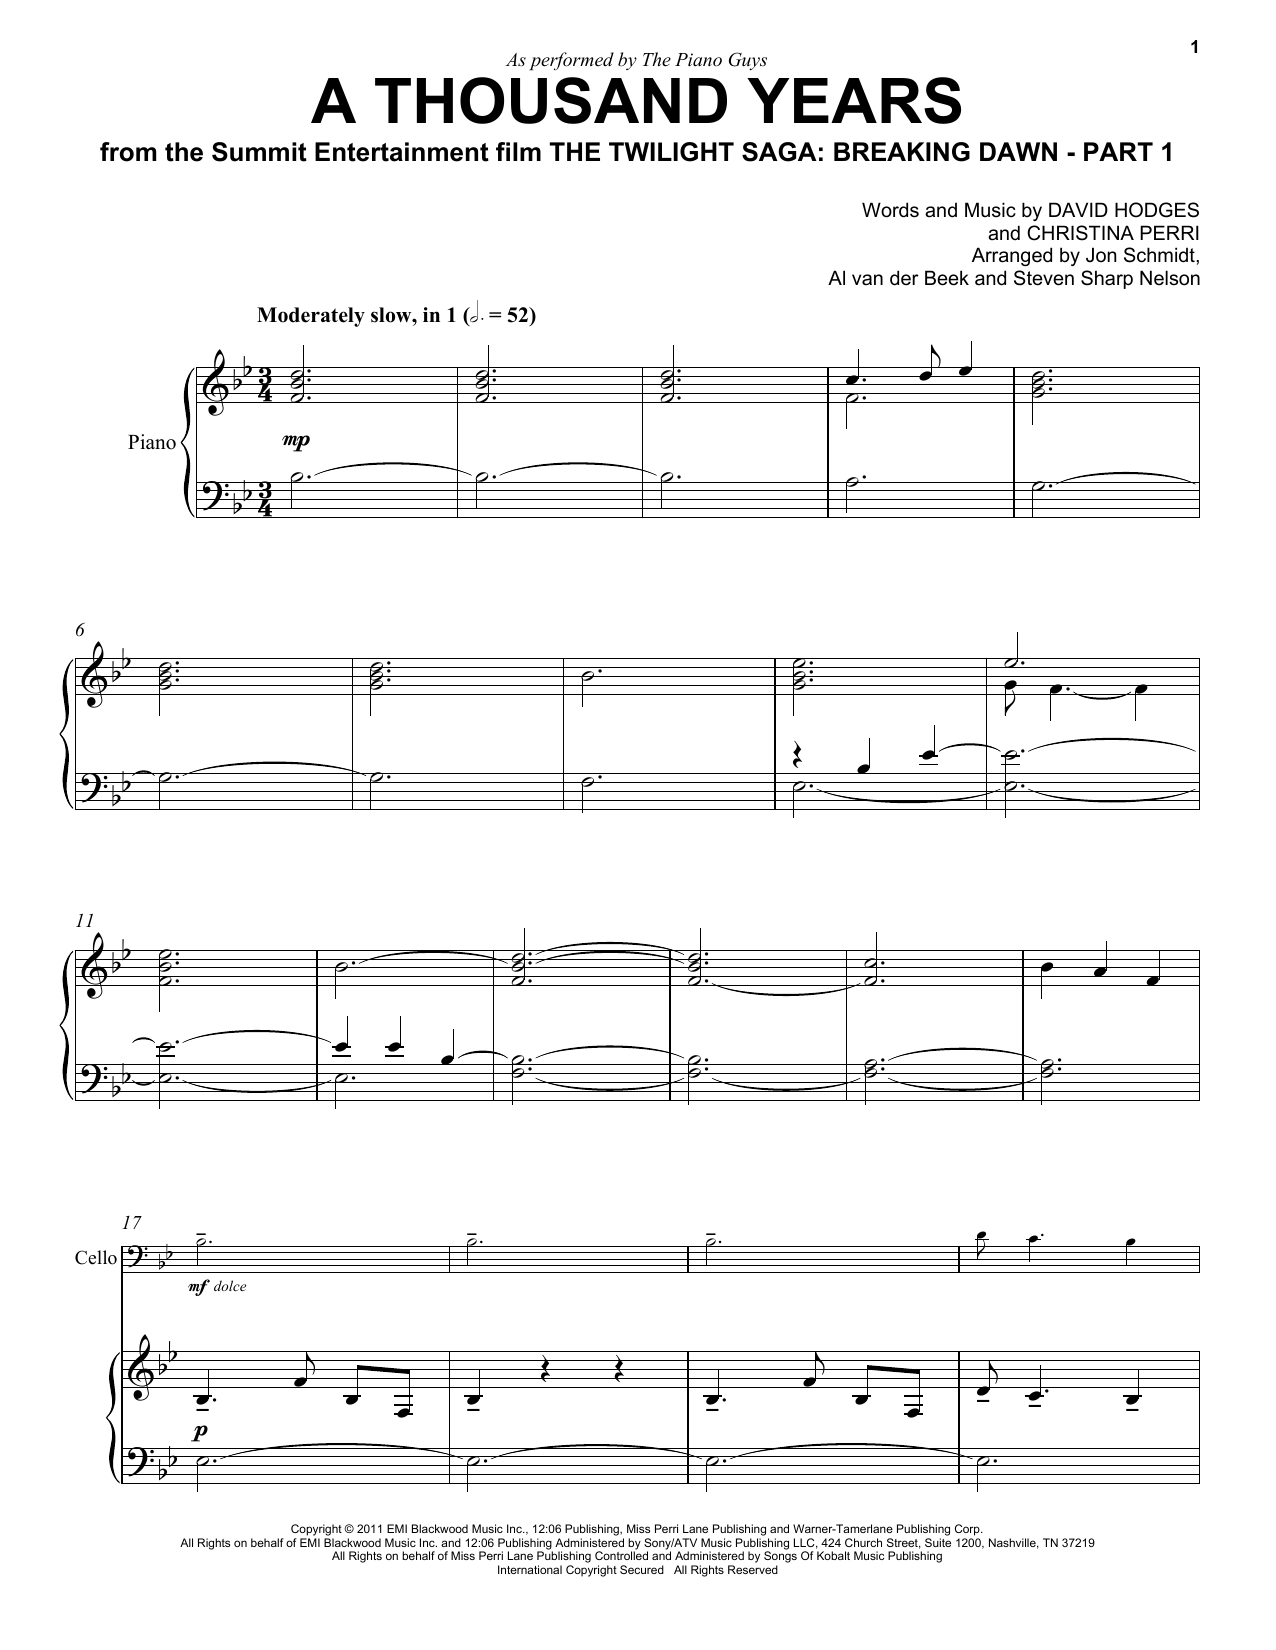 Download The Piano Guys 'A Thousand Years' Digital Sheet Music Notes & Chords and start playing in minutes